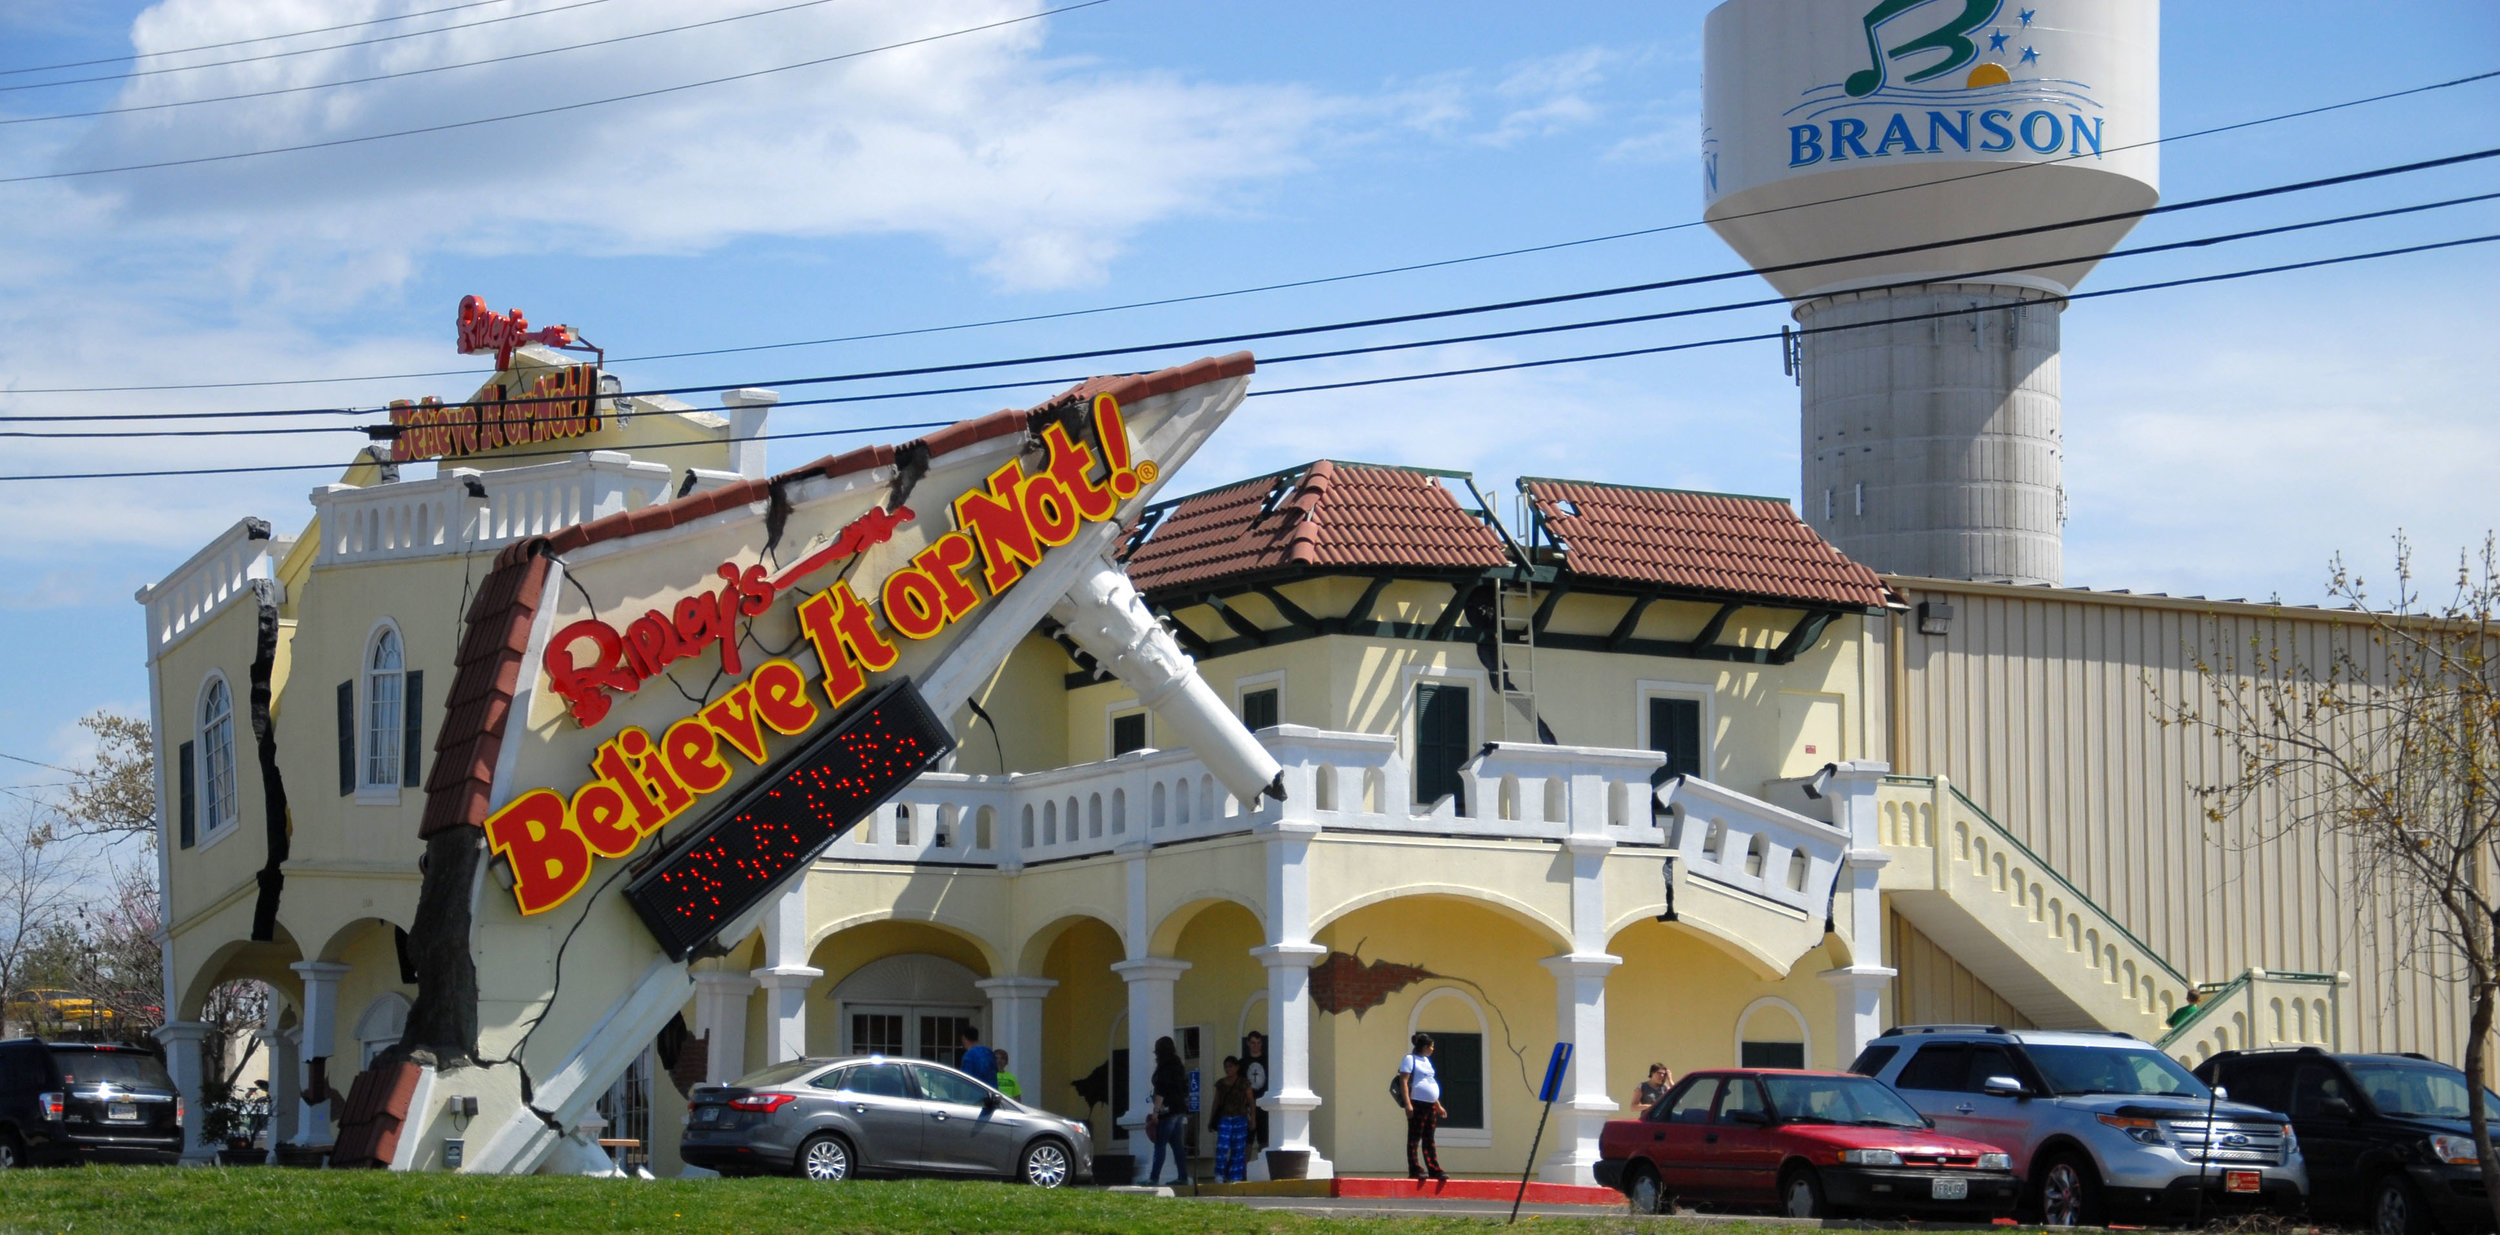 RIPLEY'S BELIEVE IT OR NOT - BRANSON, MO   Discover the strange, the shocking, and beautiful at Ripley's Believe It or Not! in Branson. Enjoy some eye-popping exhibits where you can pose with the Vampire Woman, lose yourself in our spinning vortex tunnel, and even see a shrunken head!